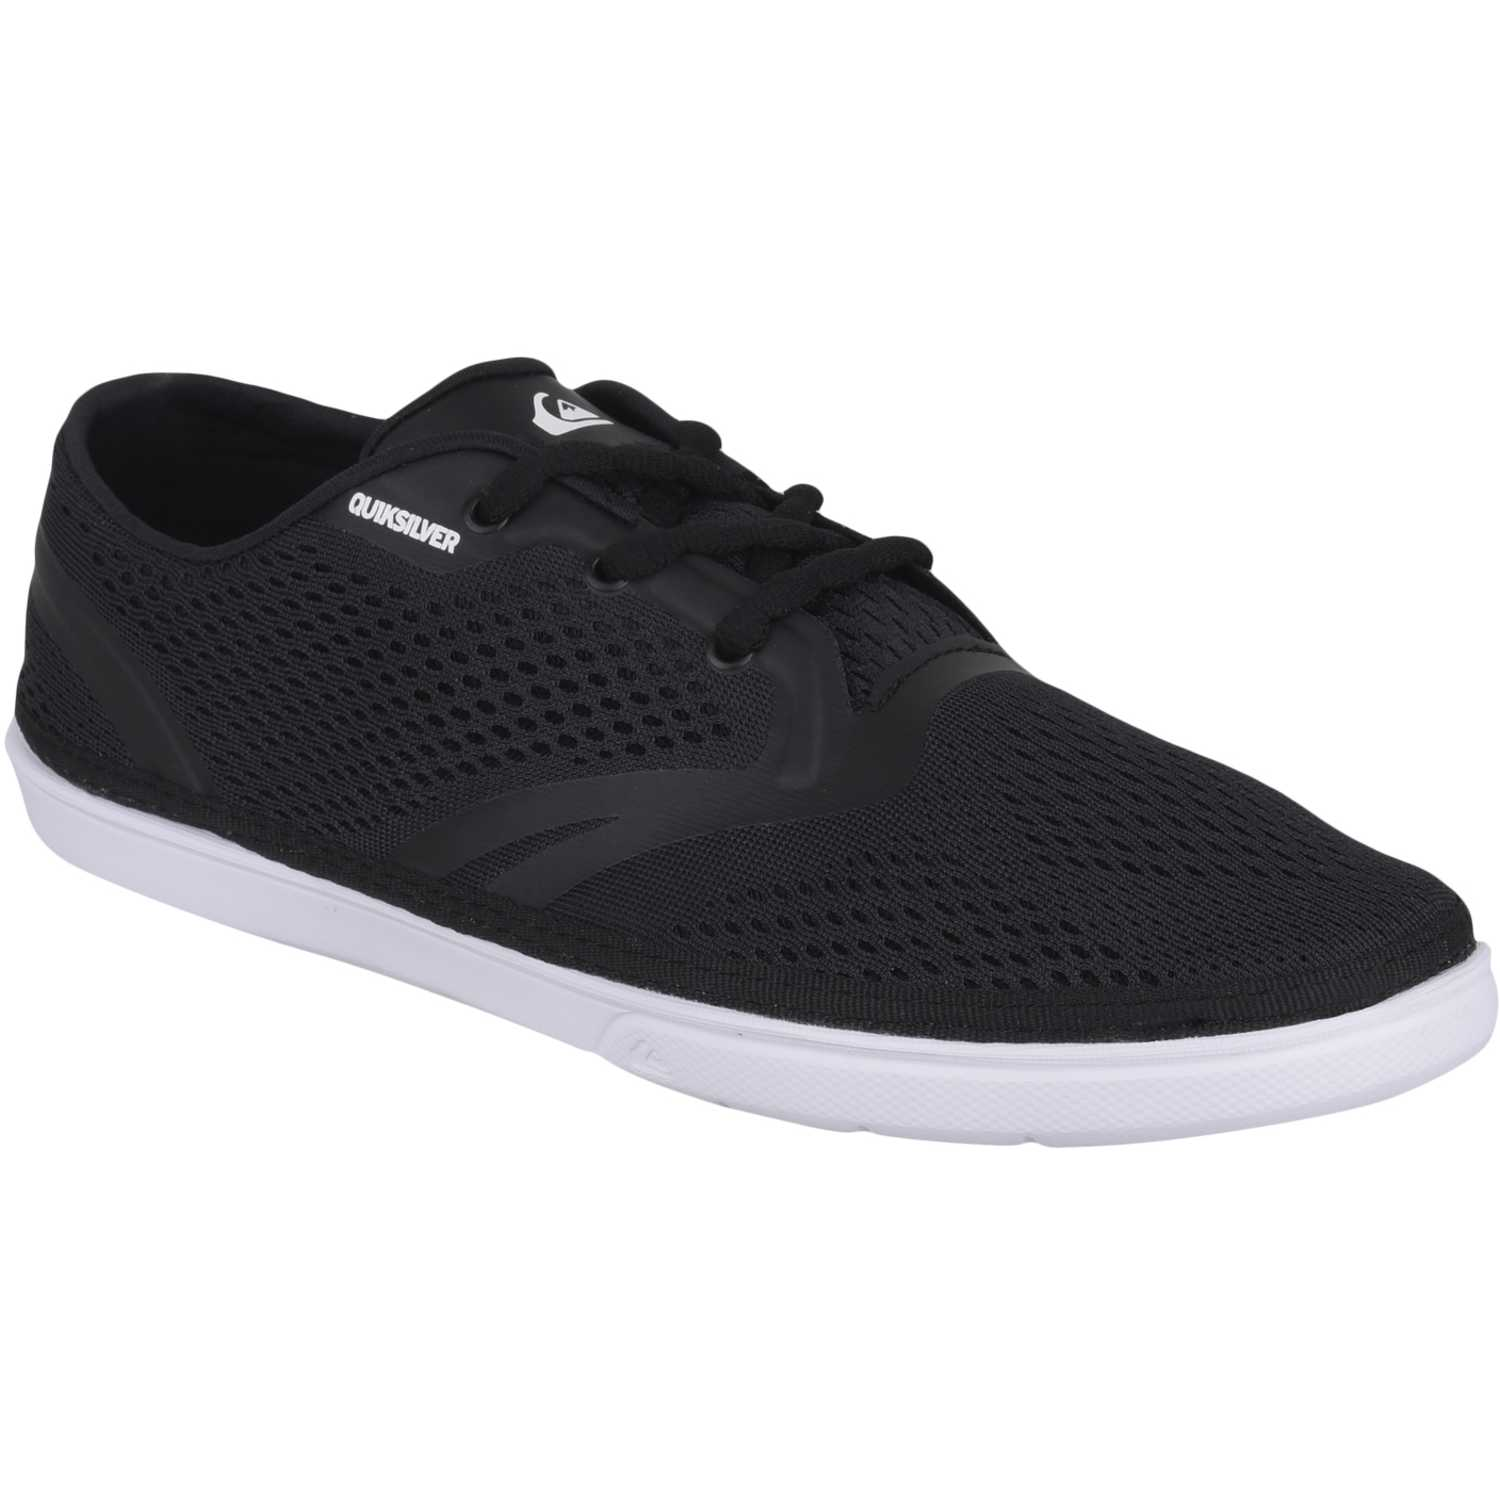 Quiksilver oceanside Negro Walking